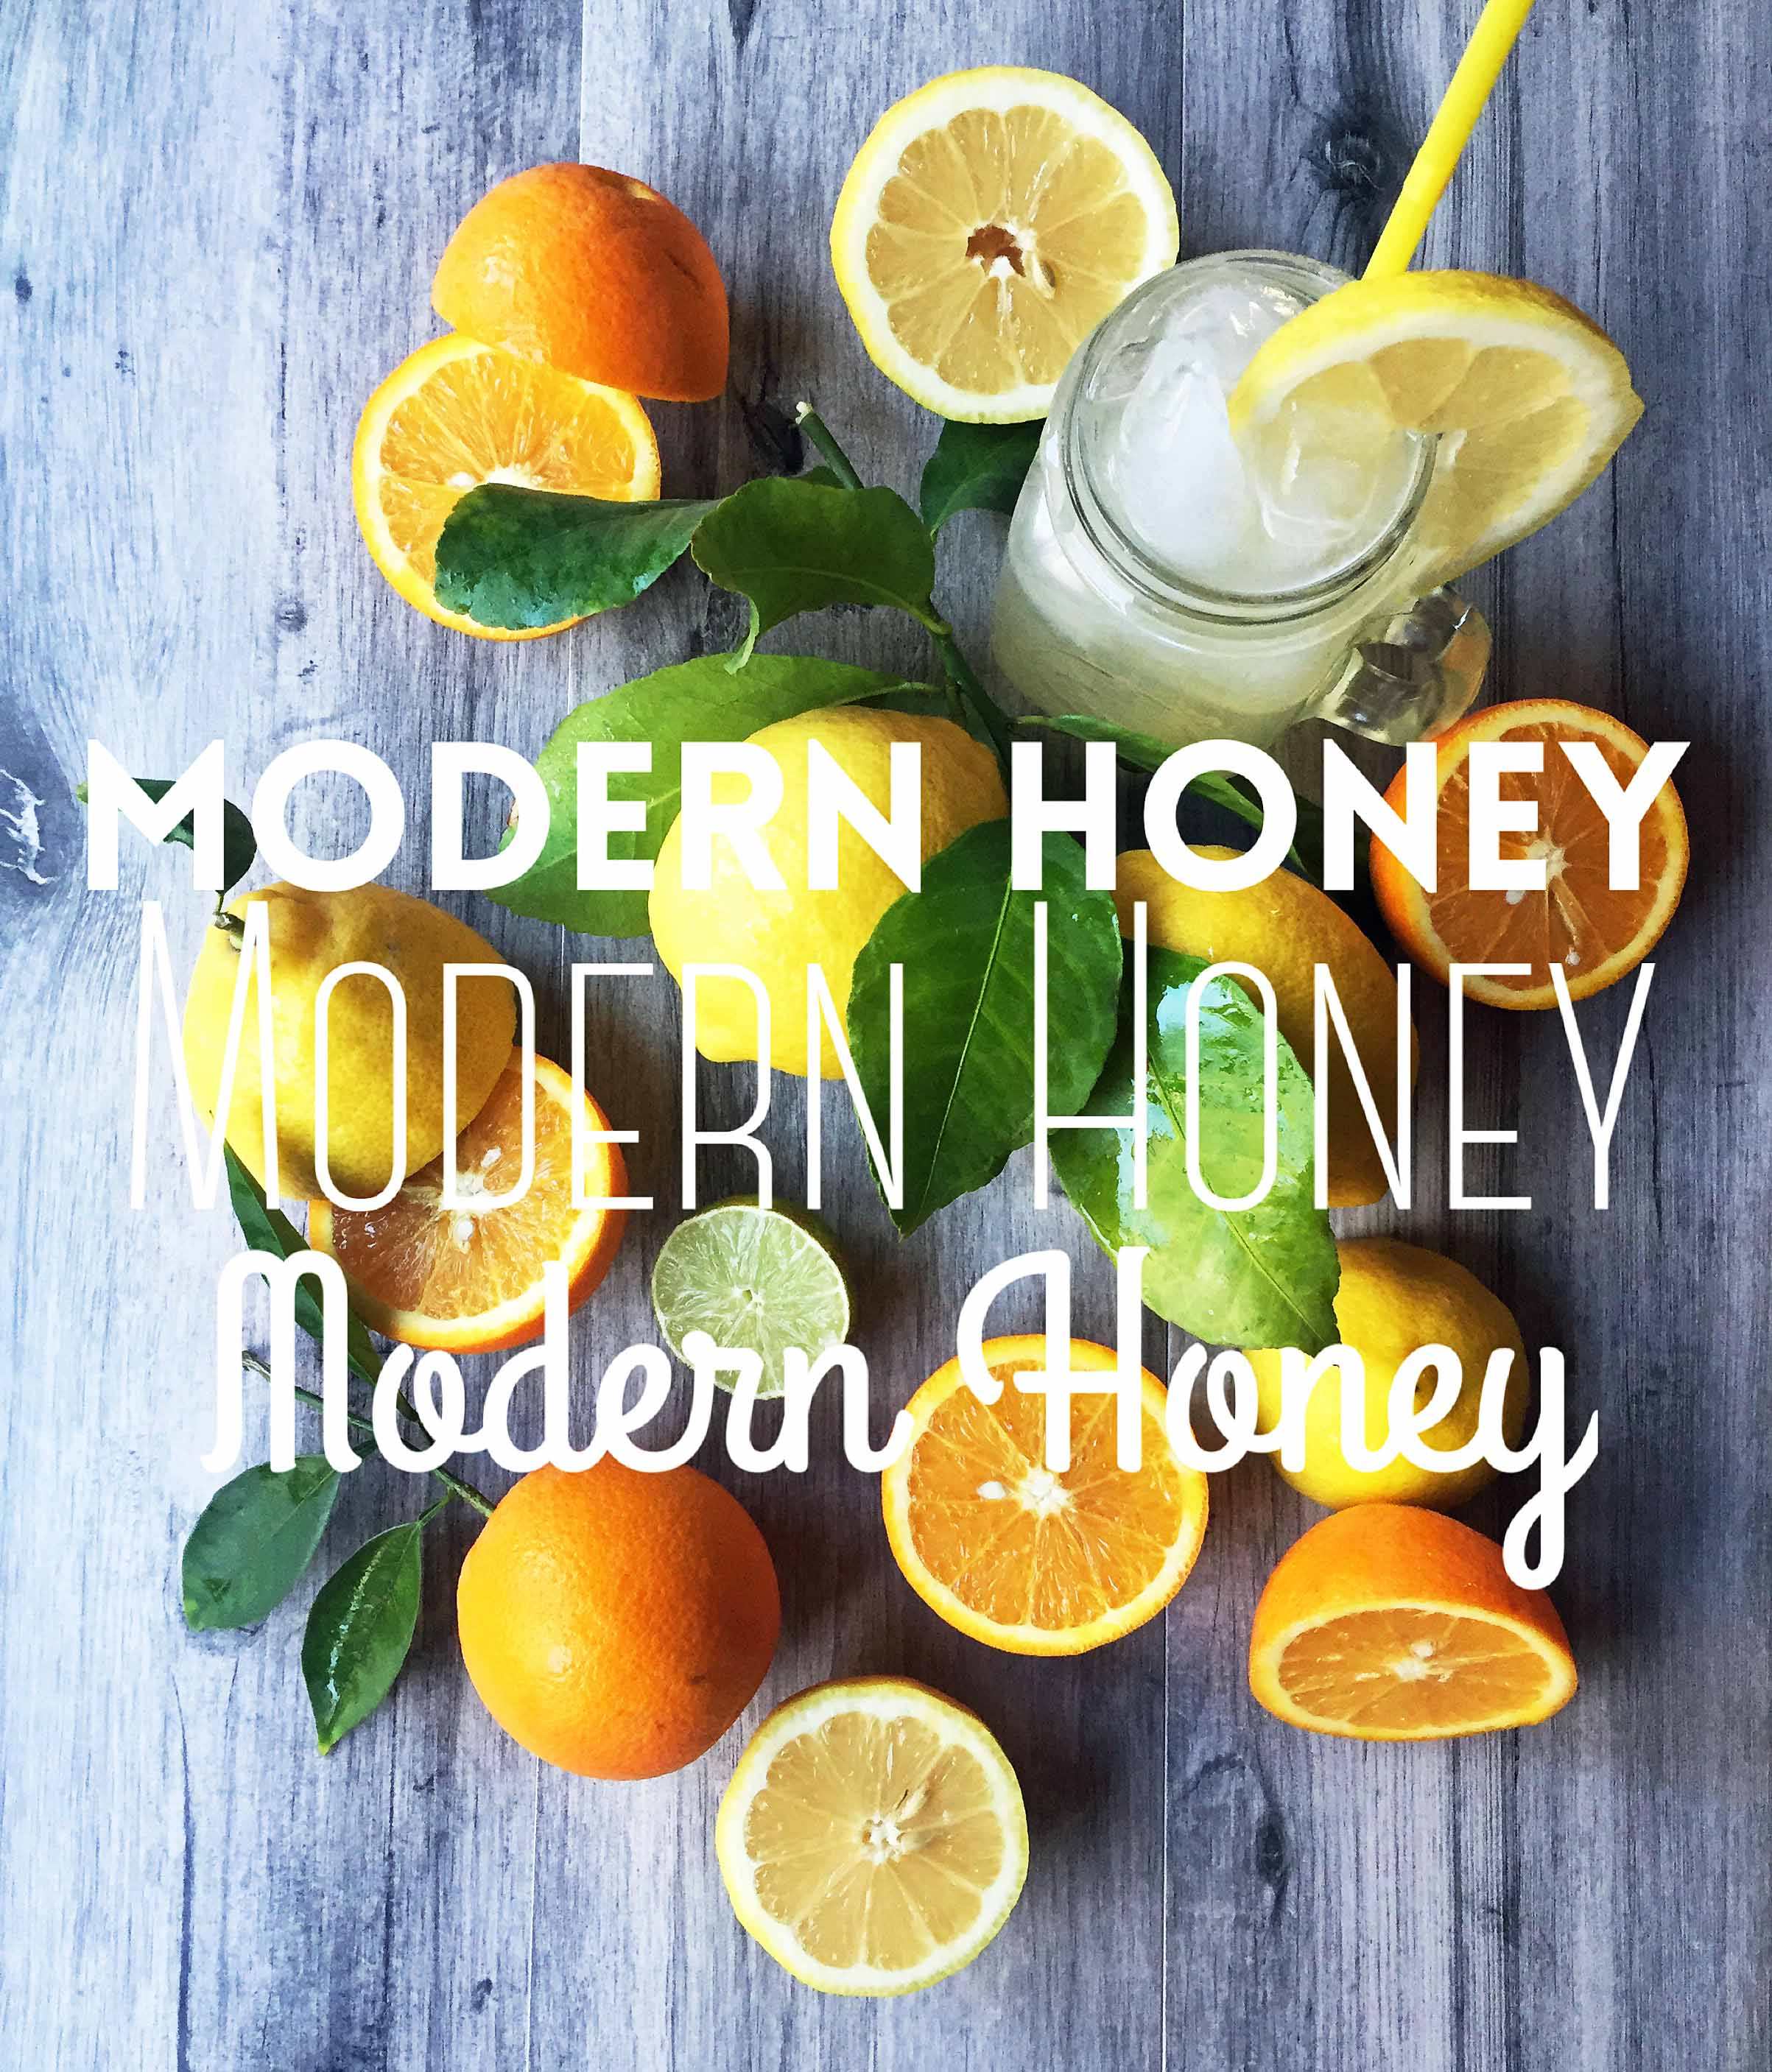 Modern Honey by Melissa Stadler